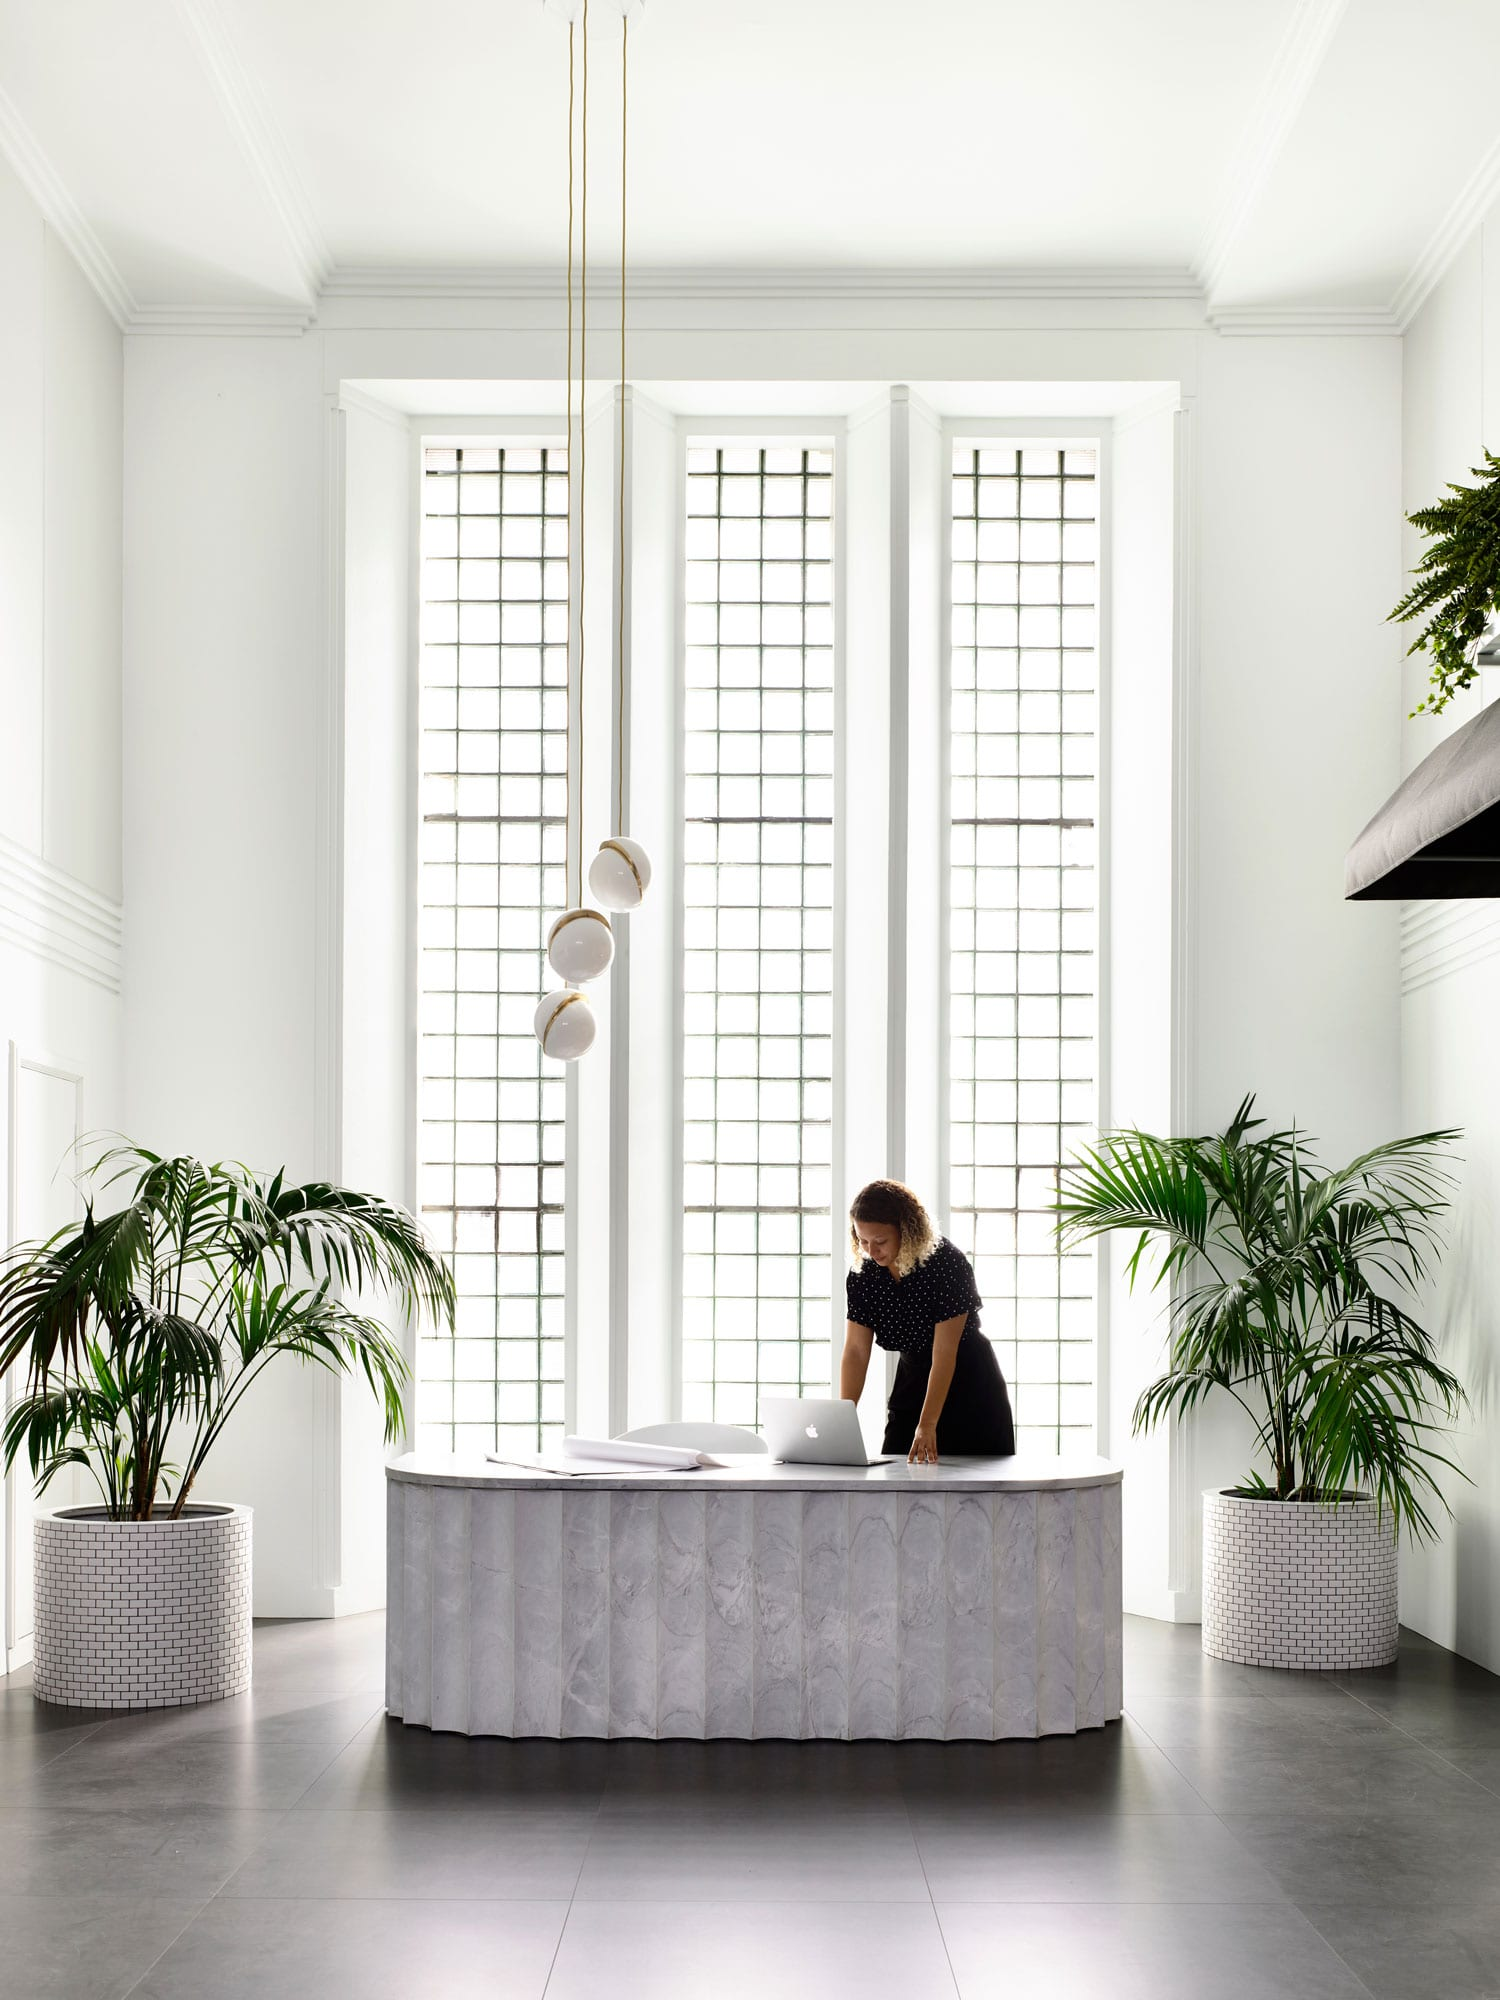 Artedomus Sydney Showroom by The Stella Collective & Thomas Coward | Yellowtrace